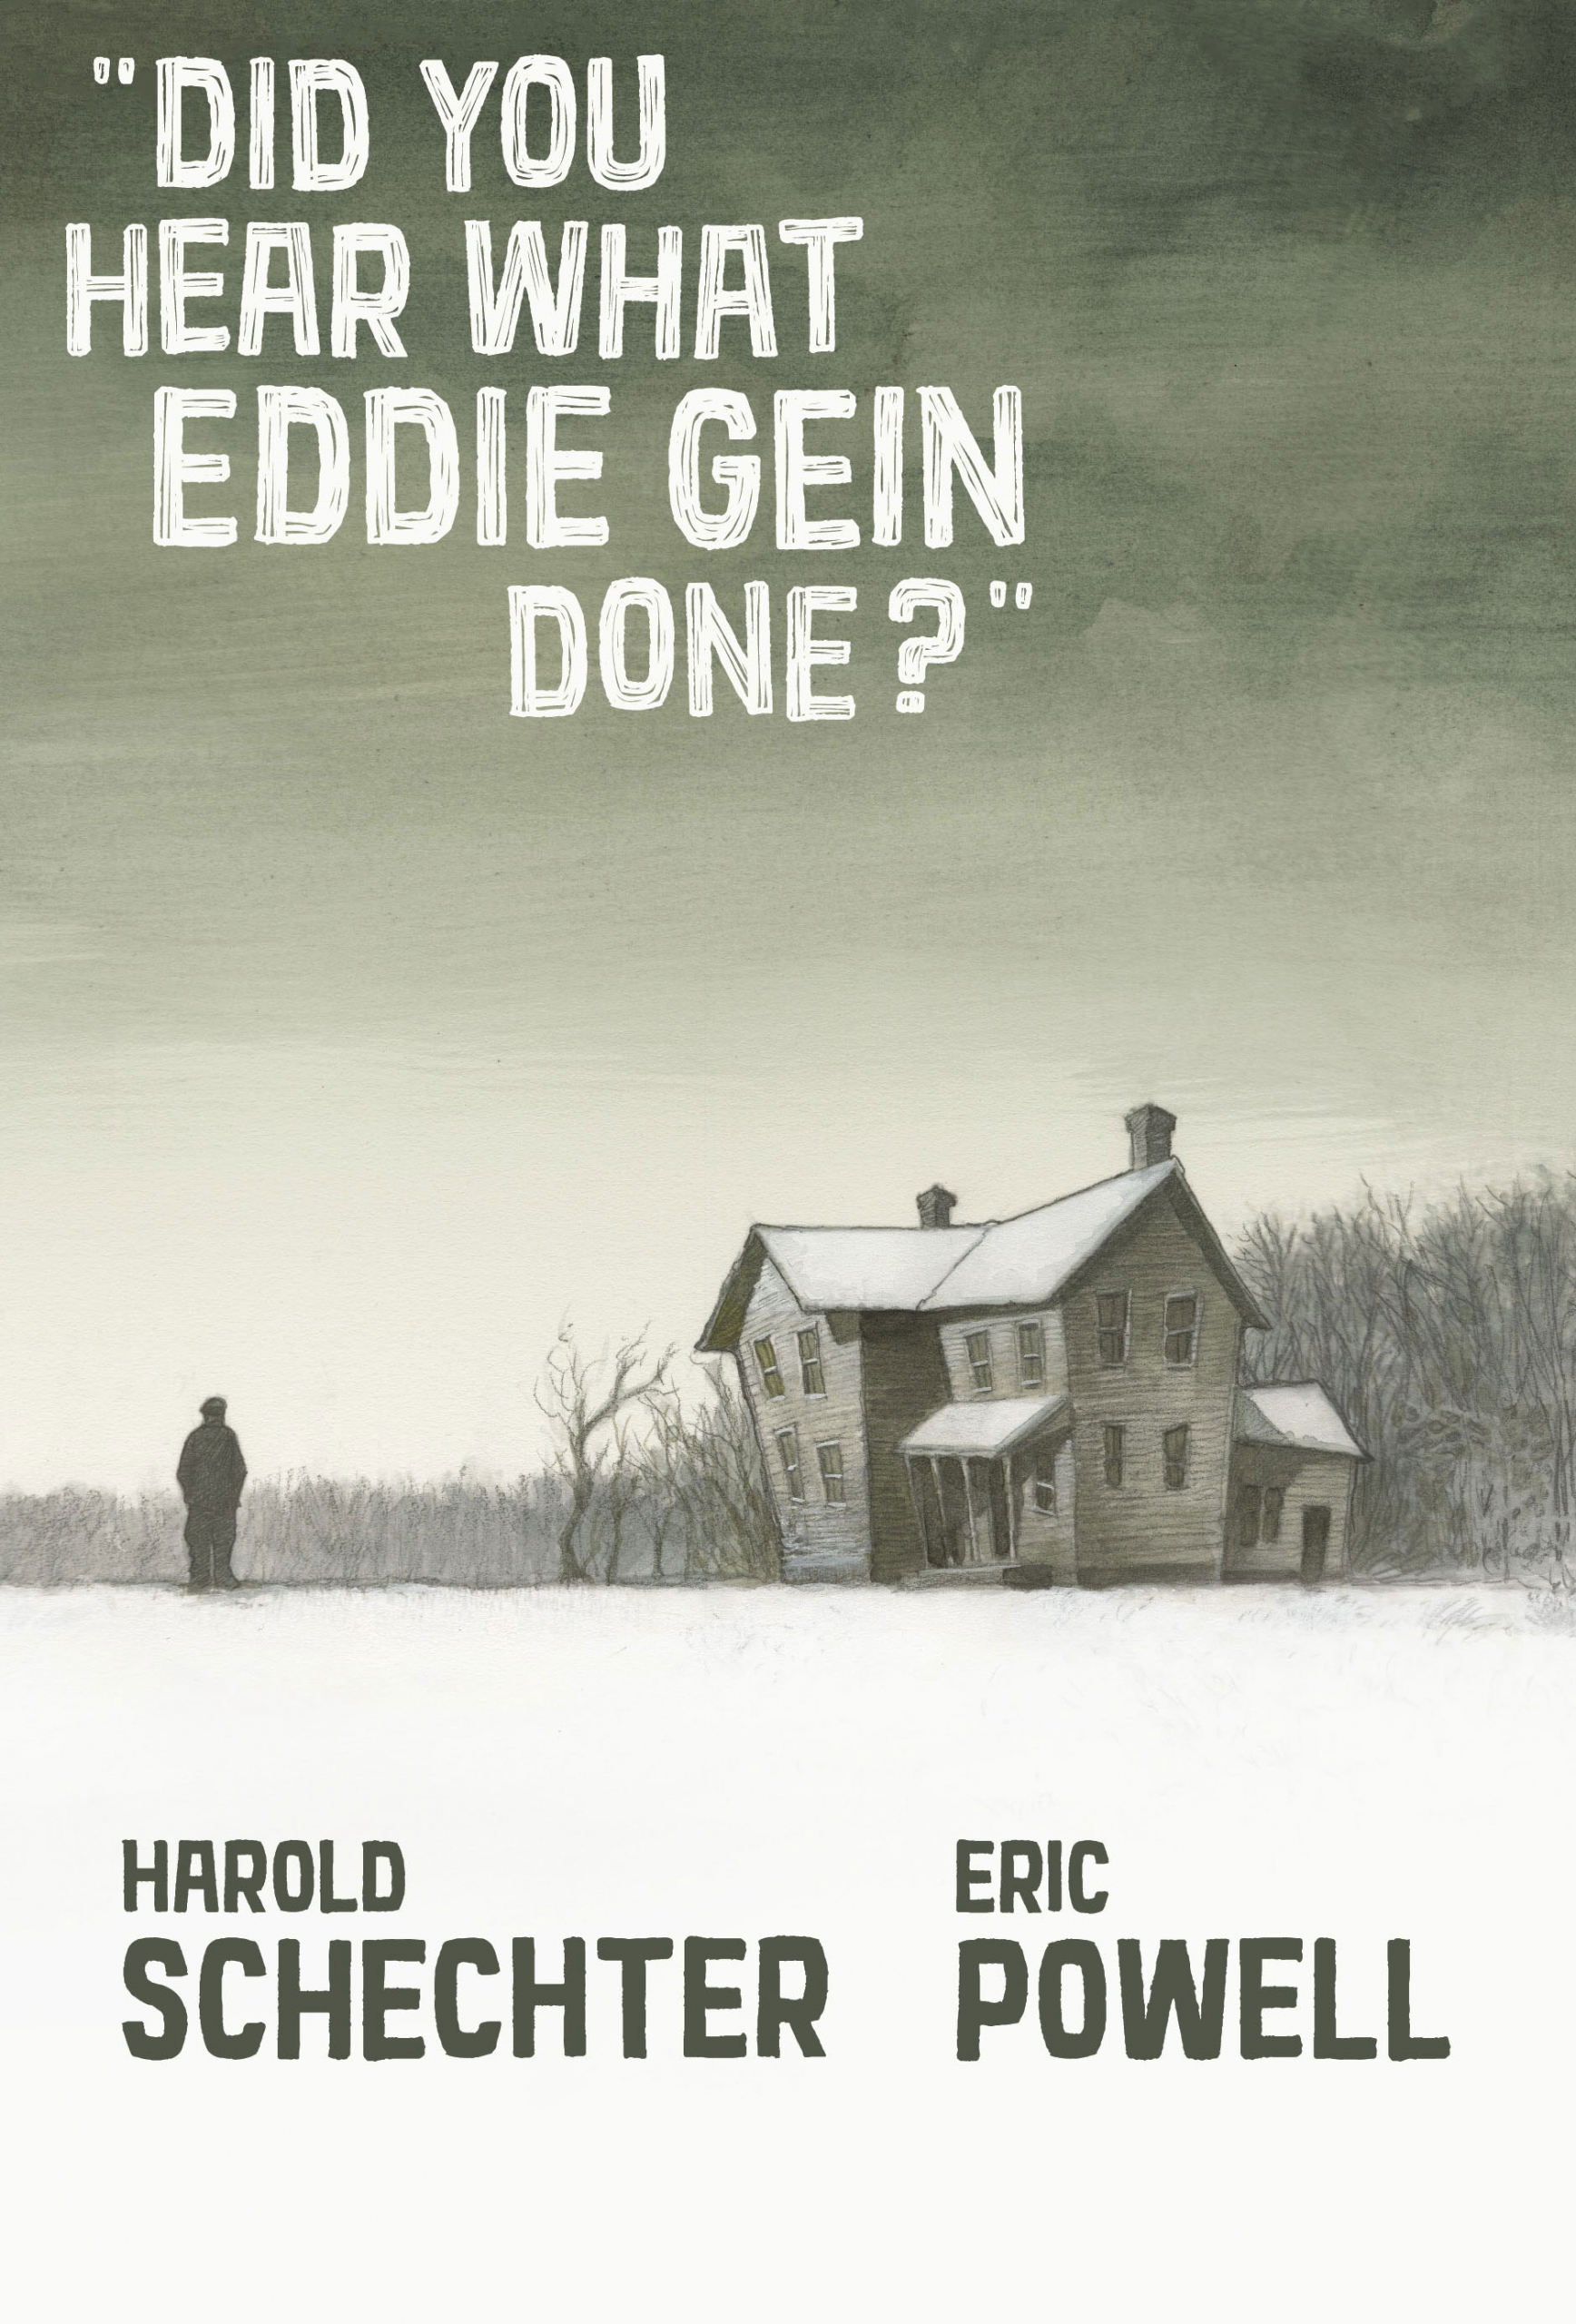 Did You Hear What Eddie Gein Done? graphic novel by by Eric Powell and Harold Schechter